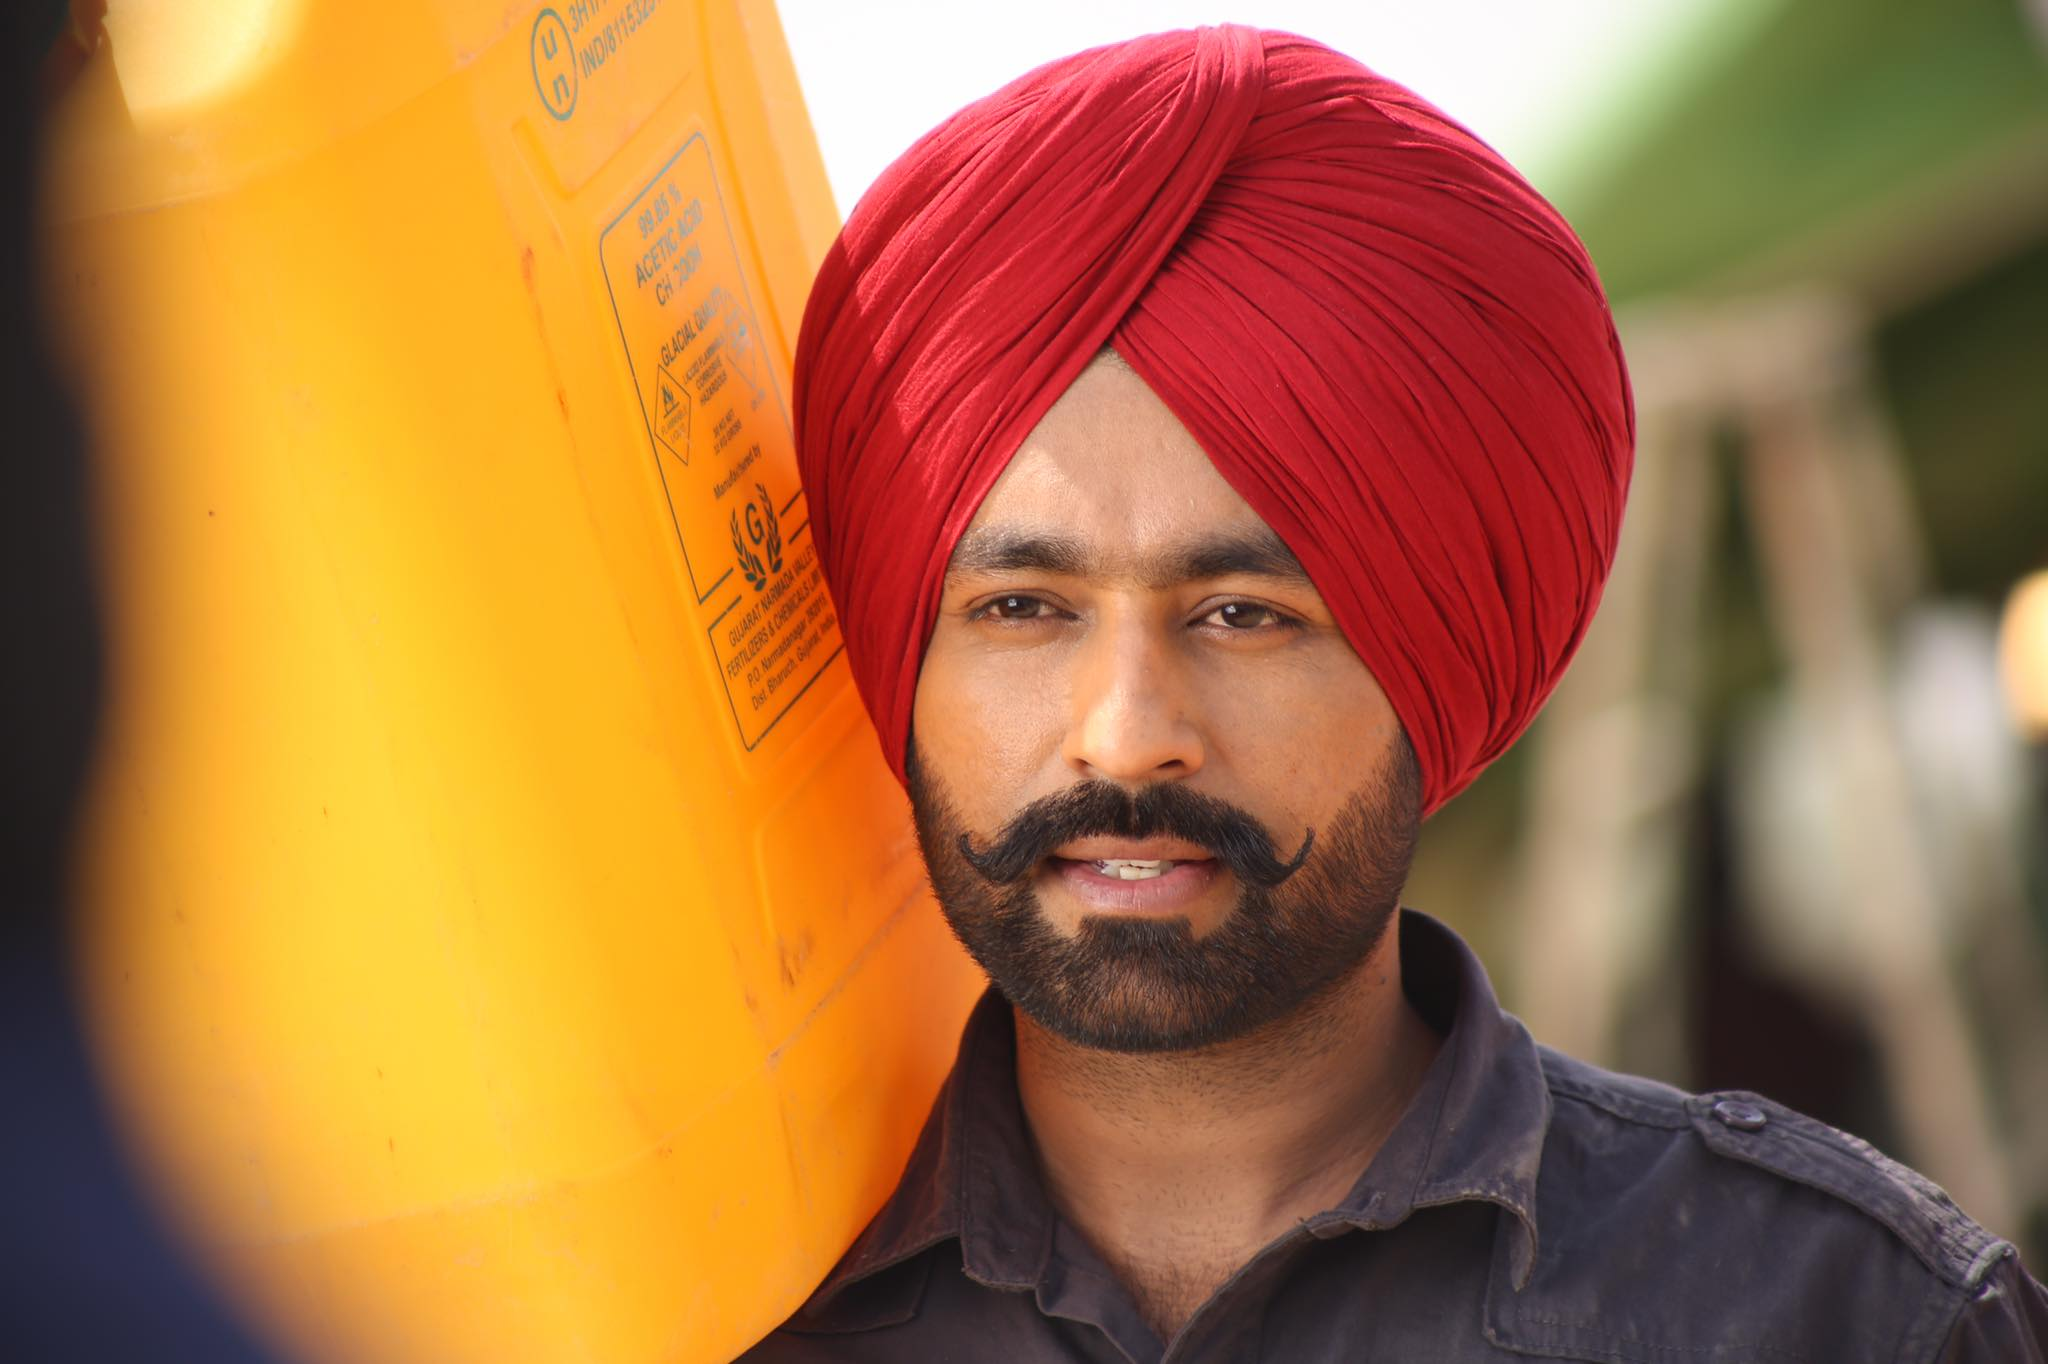 Tarsem Singh Jassar Indian Lyricist, Singer, Model, Producer